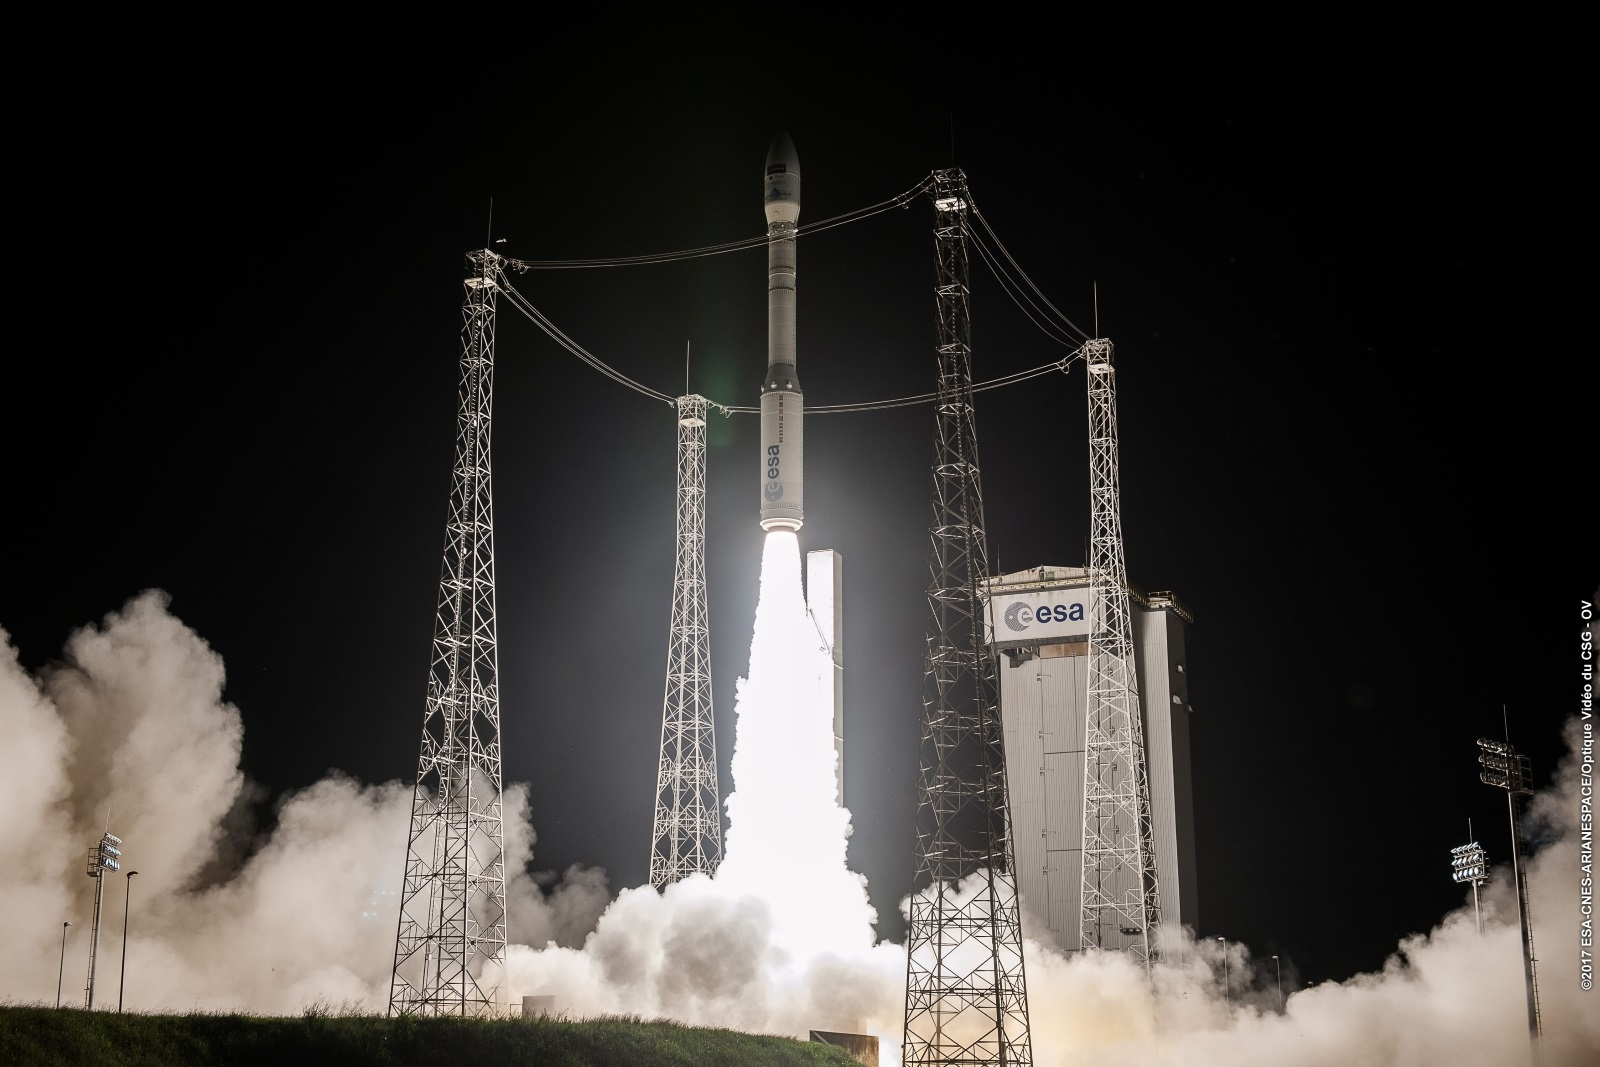 Liftoff of Vega/Sentinel-2B on flight VV09